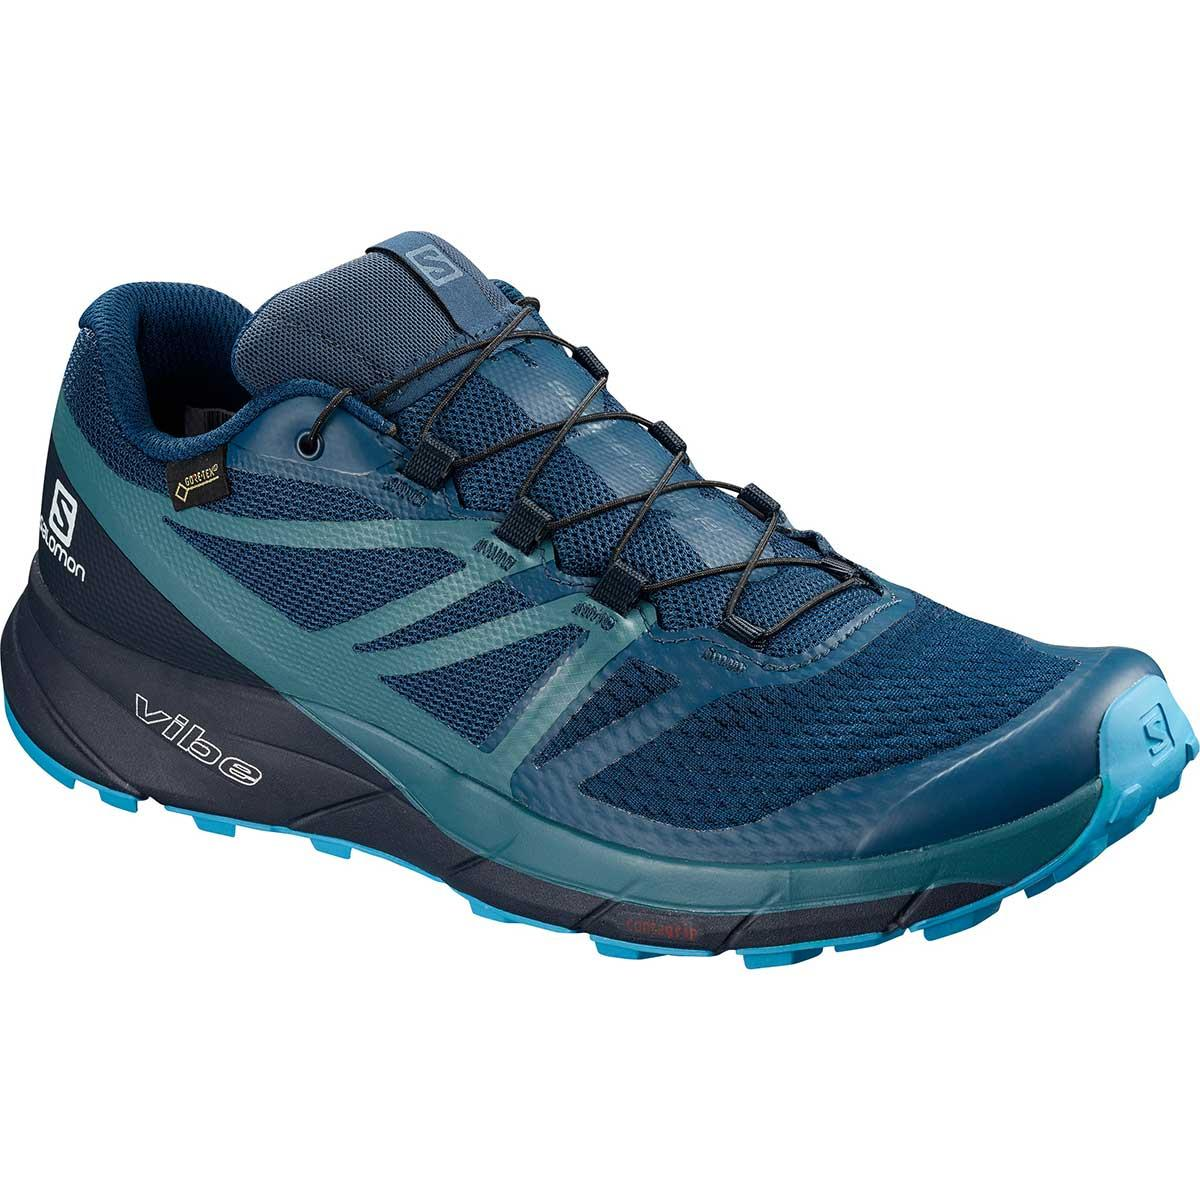 Salomon Sense Ride 2 GTX Invisible Fit in Poseidon and Navy Blazer and Hawaiian Ocean